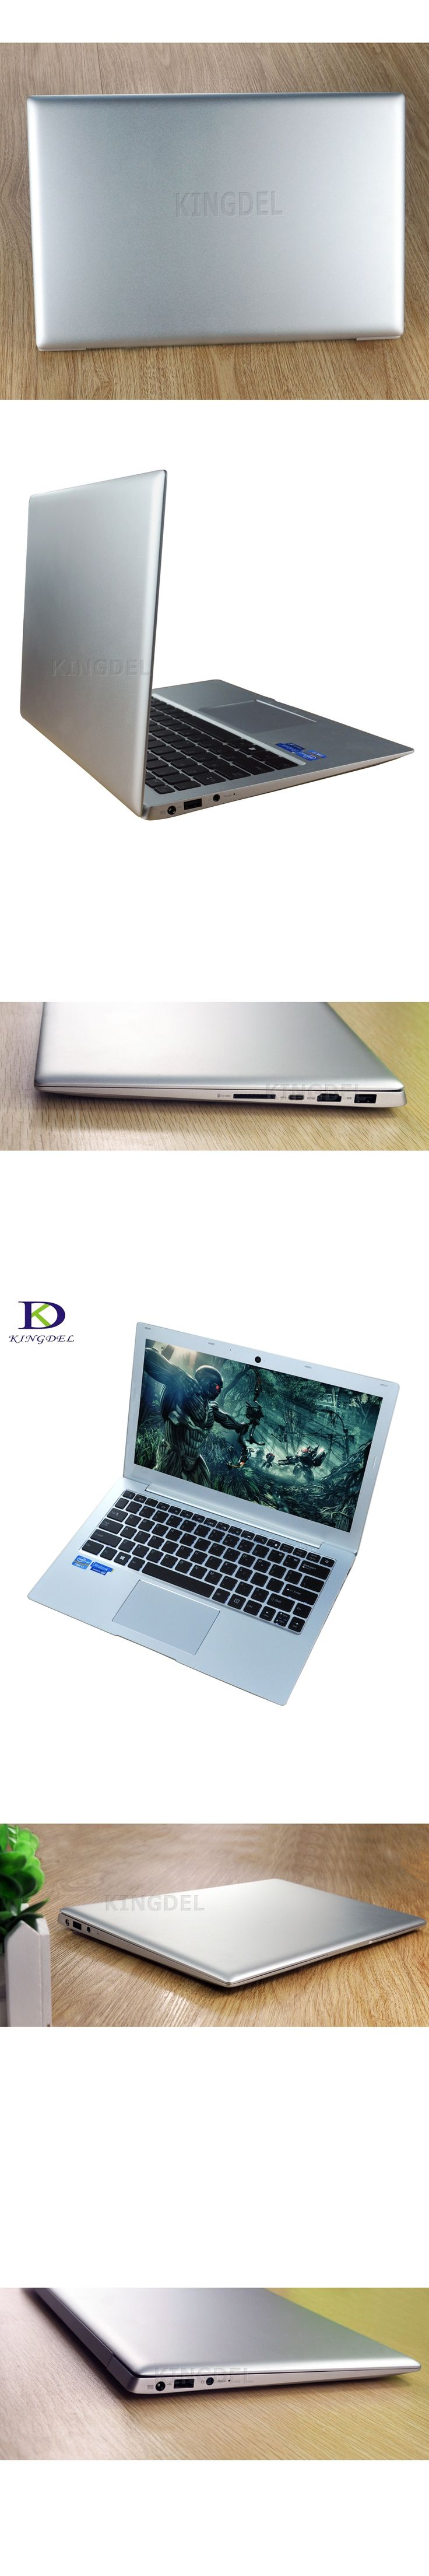 Newest Super laptop PC with Backlit Keyboard Bluetooth DDR4 Type-c SD high Frequency CPU i7 7500U 2.7GHz up to 3.5GHz Ultraslim